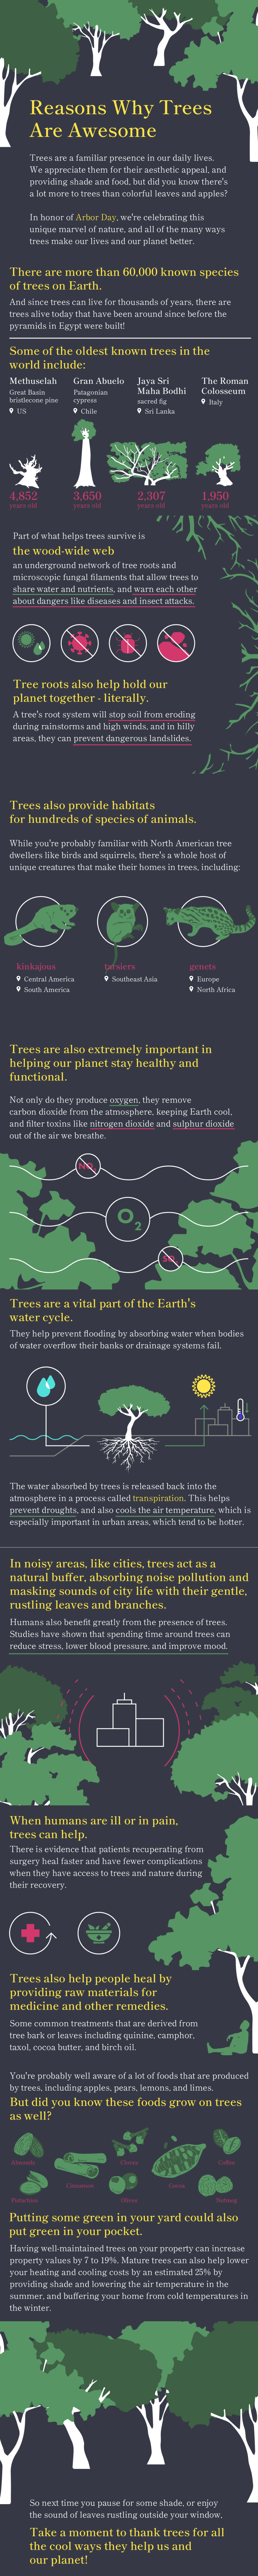 Infographic: Reasons Why Trees Are Awesome